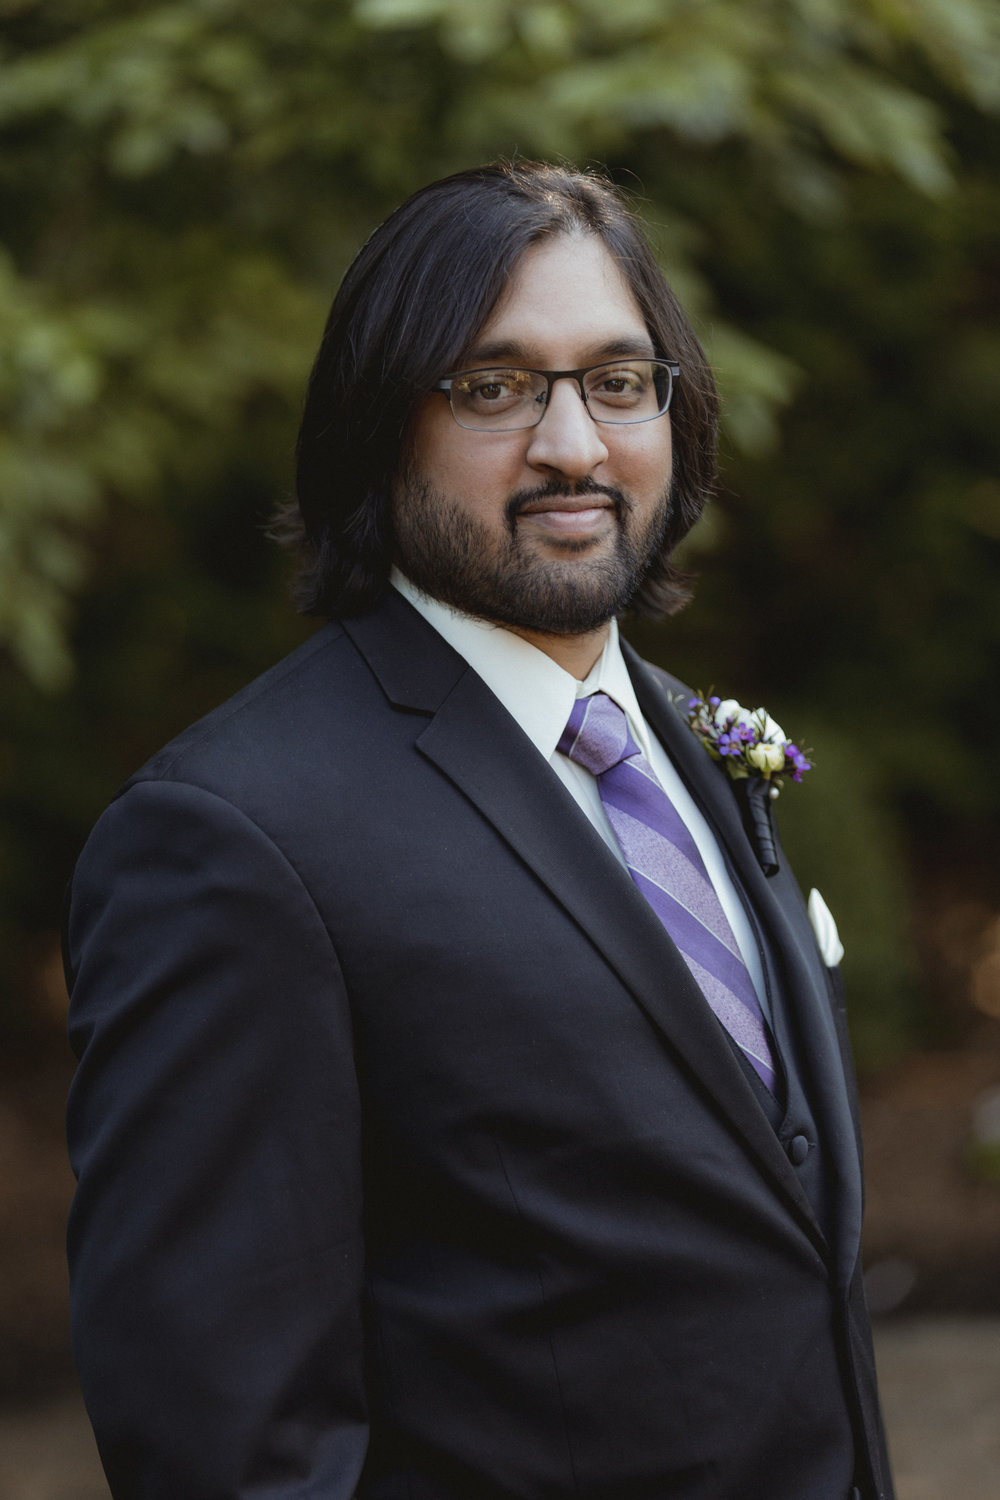 Groom poses in black suit with purple striped tie - Estate at Florentine Gardens wedding - Hudson Valley Wedding - Kelsey & Anish's wedding - Amy Sims Photography